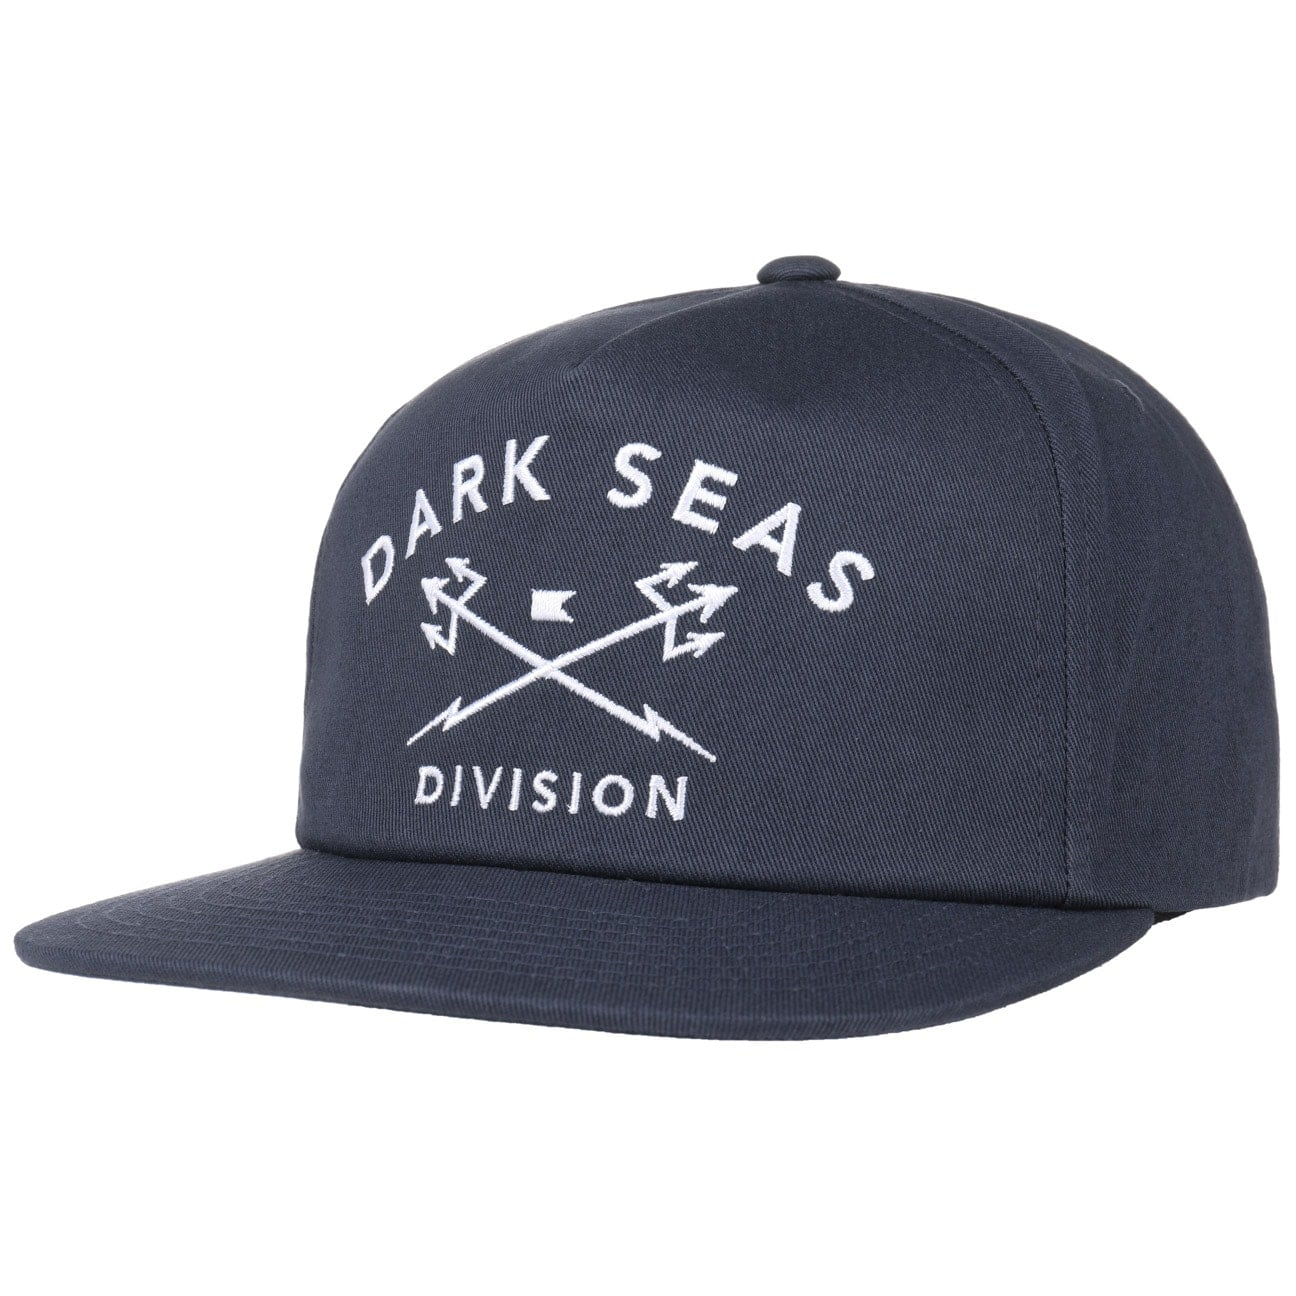 Tridents Casquette Snapback by Dark Seas  baseball cap